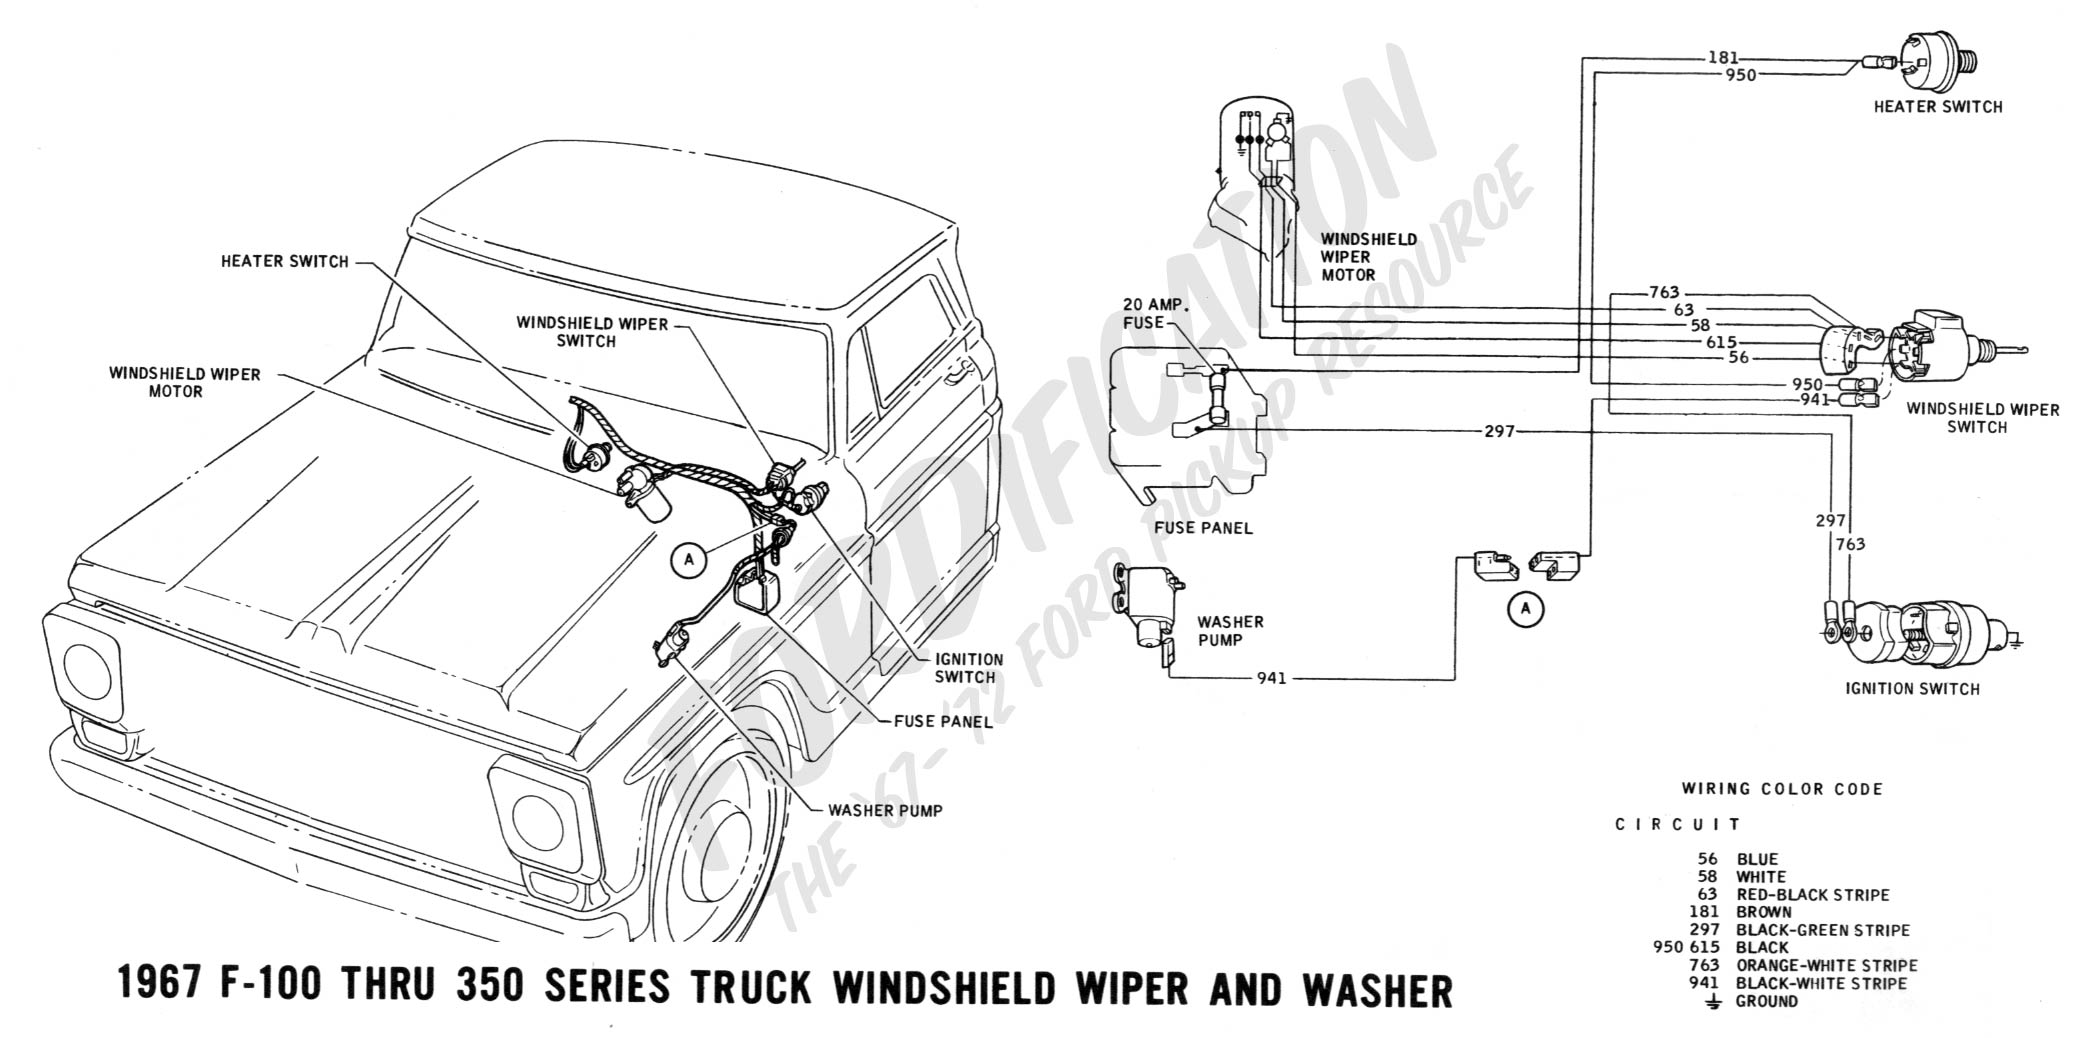 1965 Mustang Wiring Schematic 65 Ford Pickup Column Simple Electrical Diagram Truck Technical Drawings And Schematics Section H Green 1967 F 100